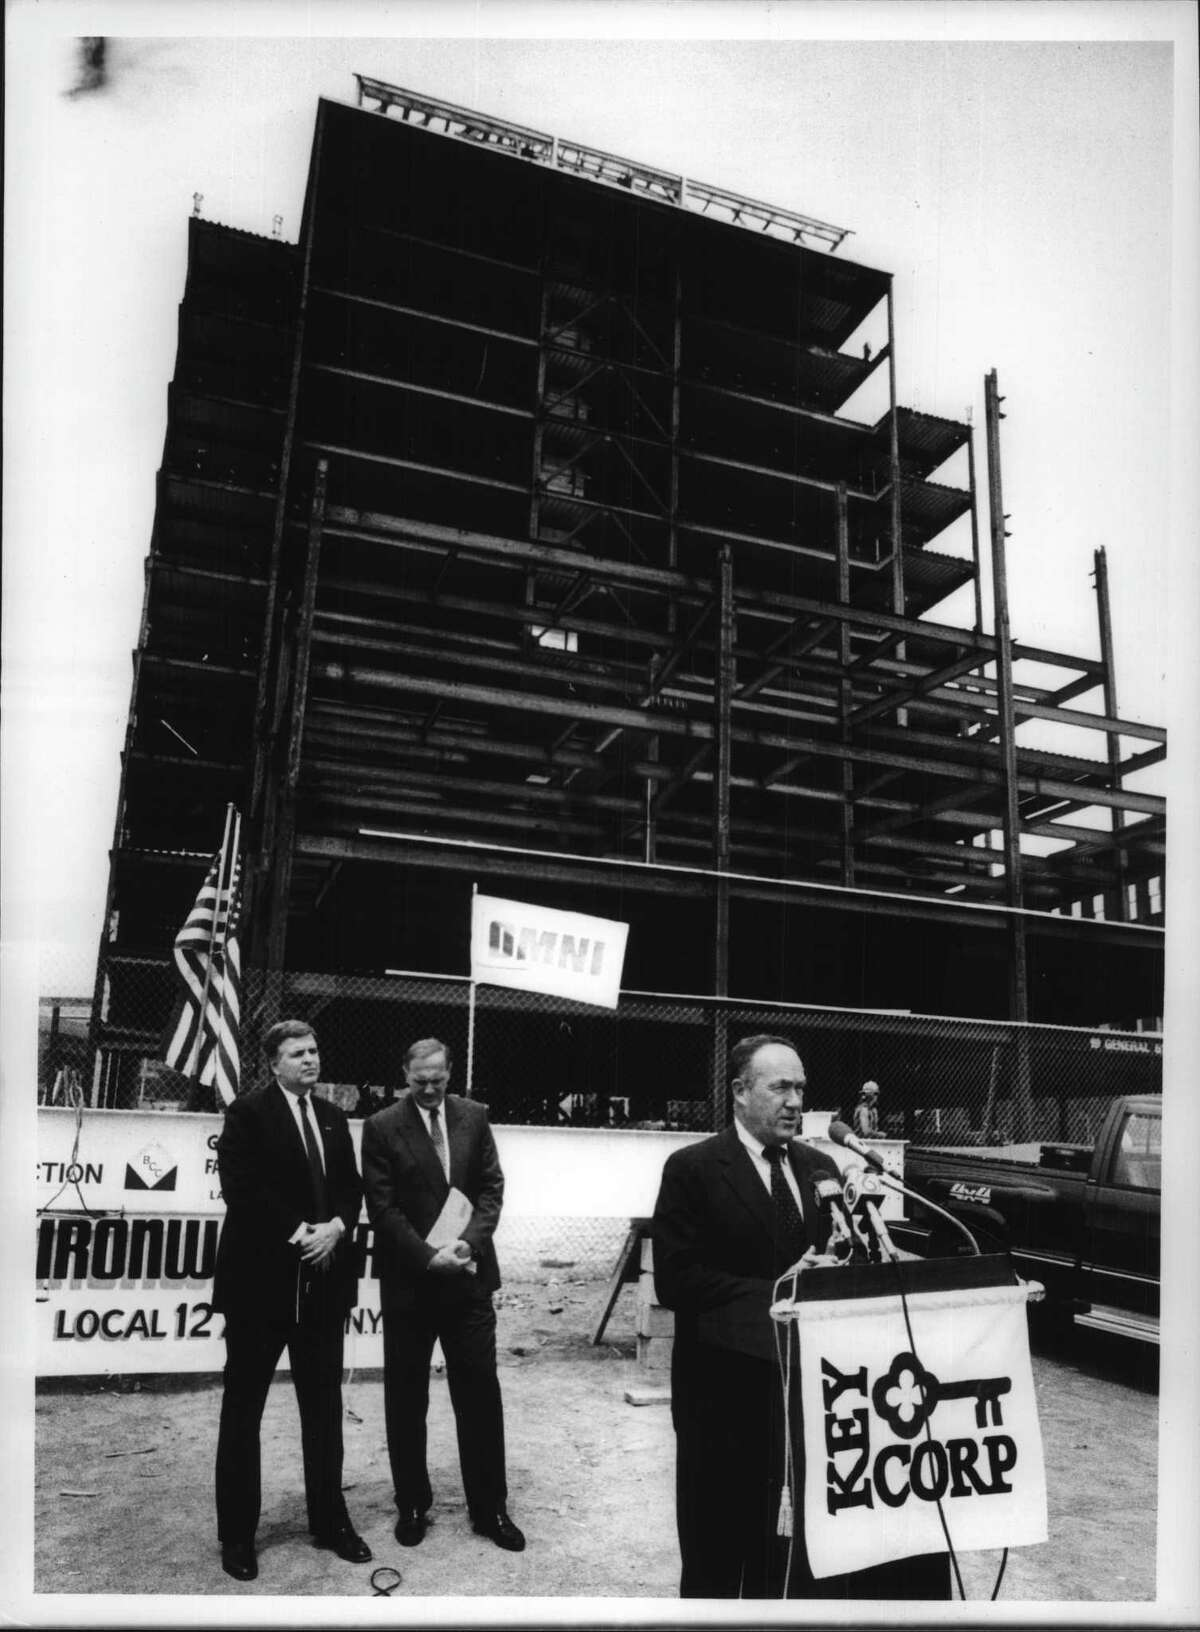 Mayor Thomas Whalen speaks at ceremony as Robert Curley, president and CEO for Key Bank of Eastern New York, and Richard D Lipps, Chairman Omni Development Company watch. The new Keycorp Building is under construction in the background on Hudson and South Pearl Street, Albany, New York. June 8, 1990 (Paul D. Kniskern Sr./Times Union Archive)